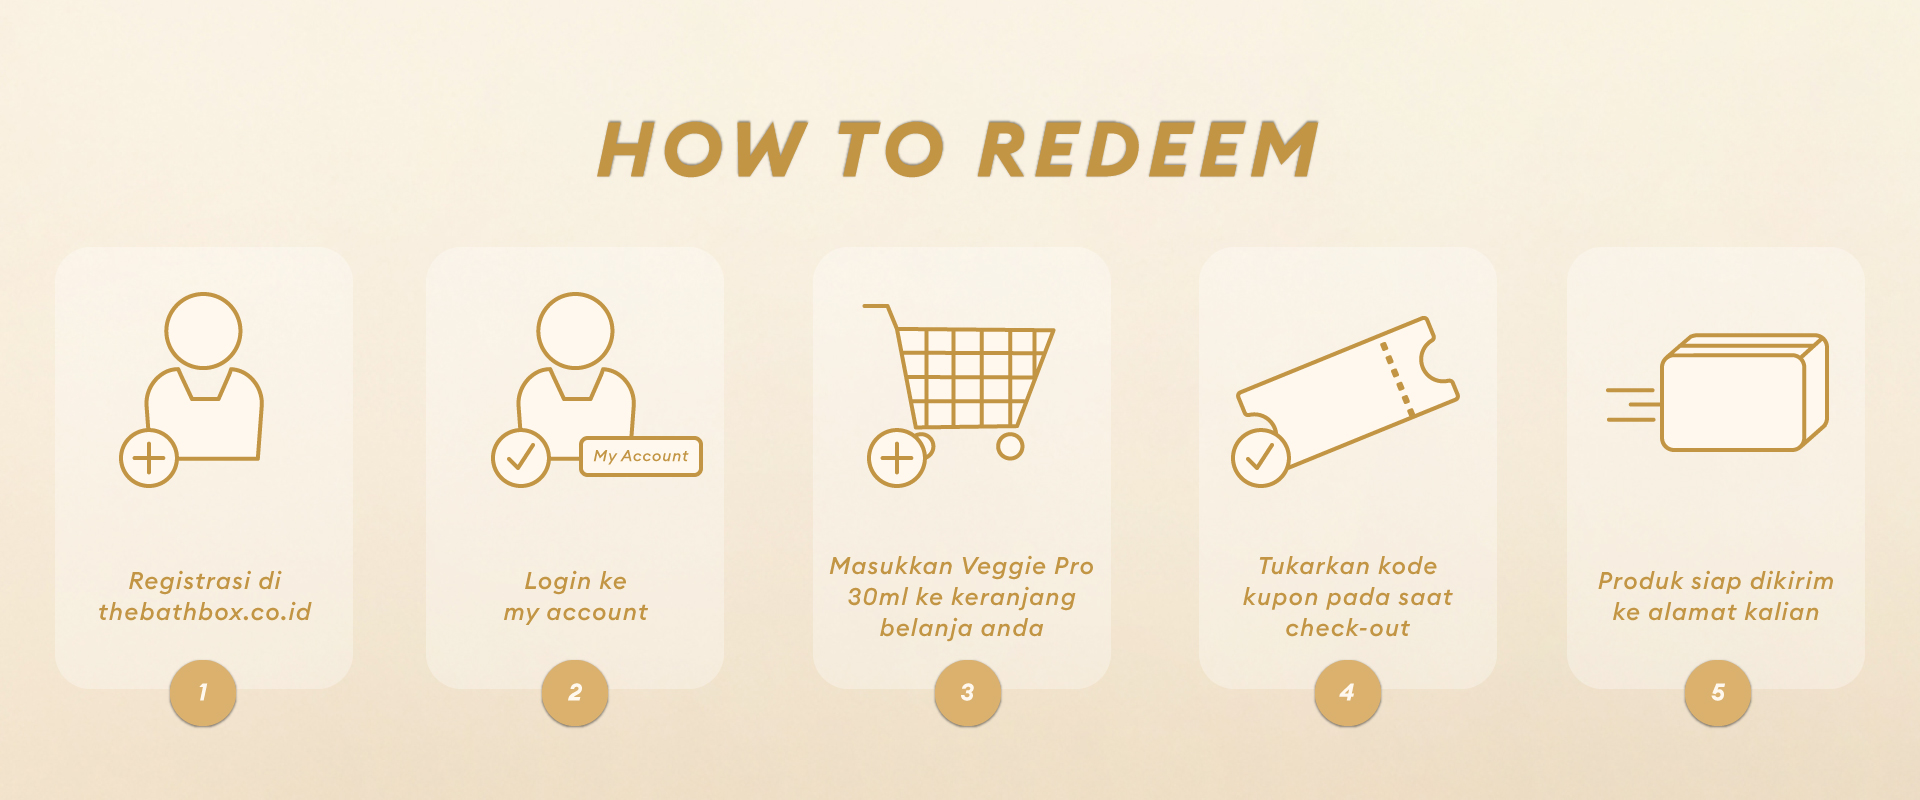 how-to-redeem